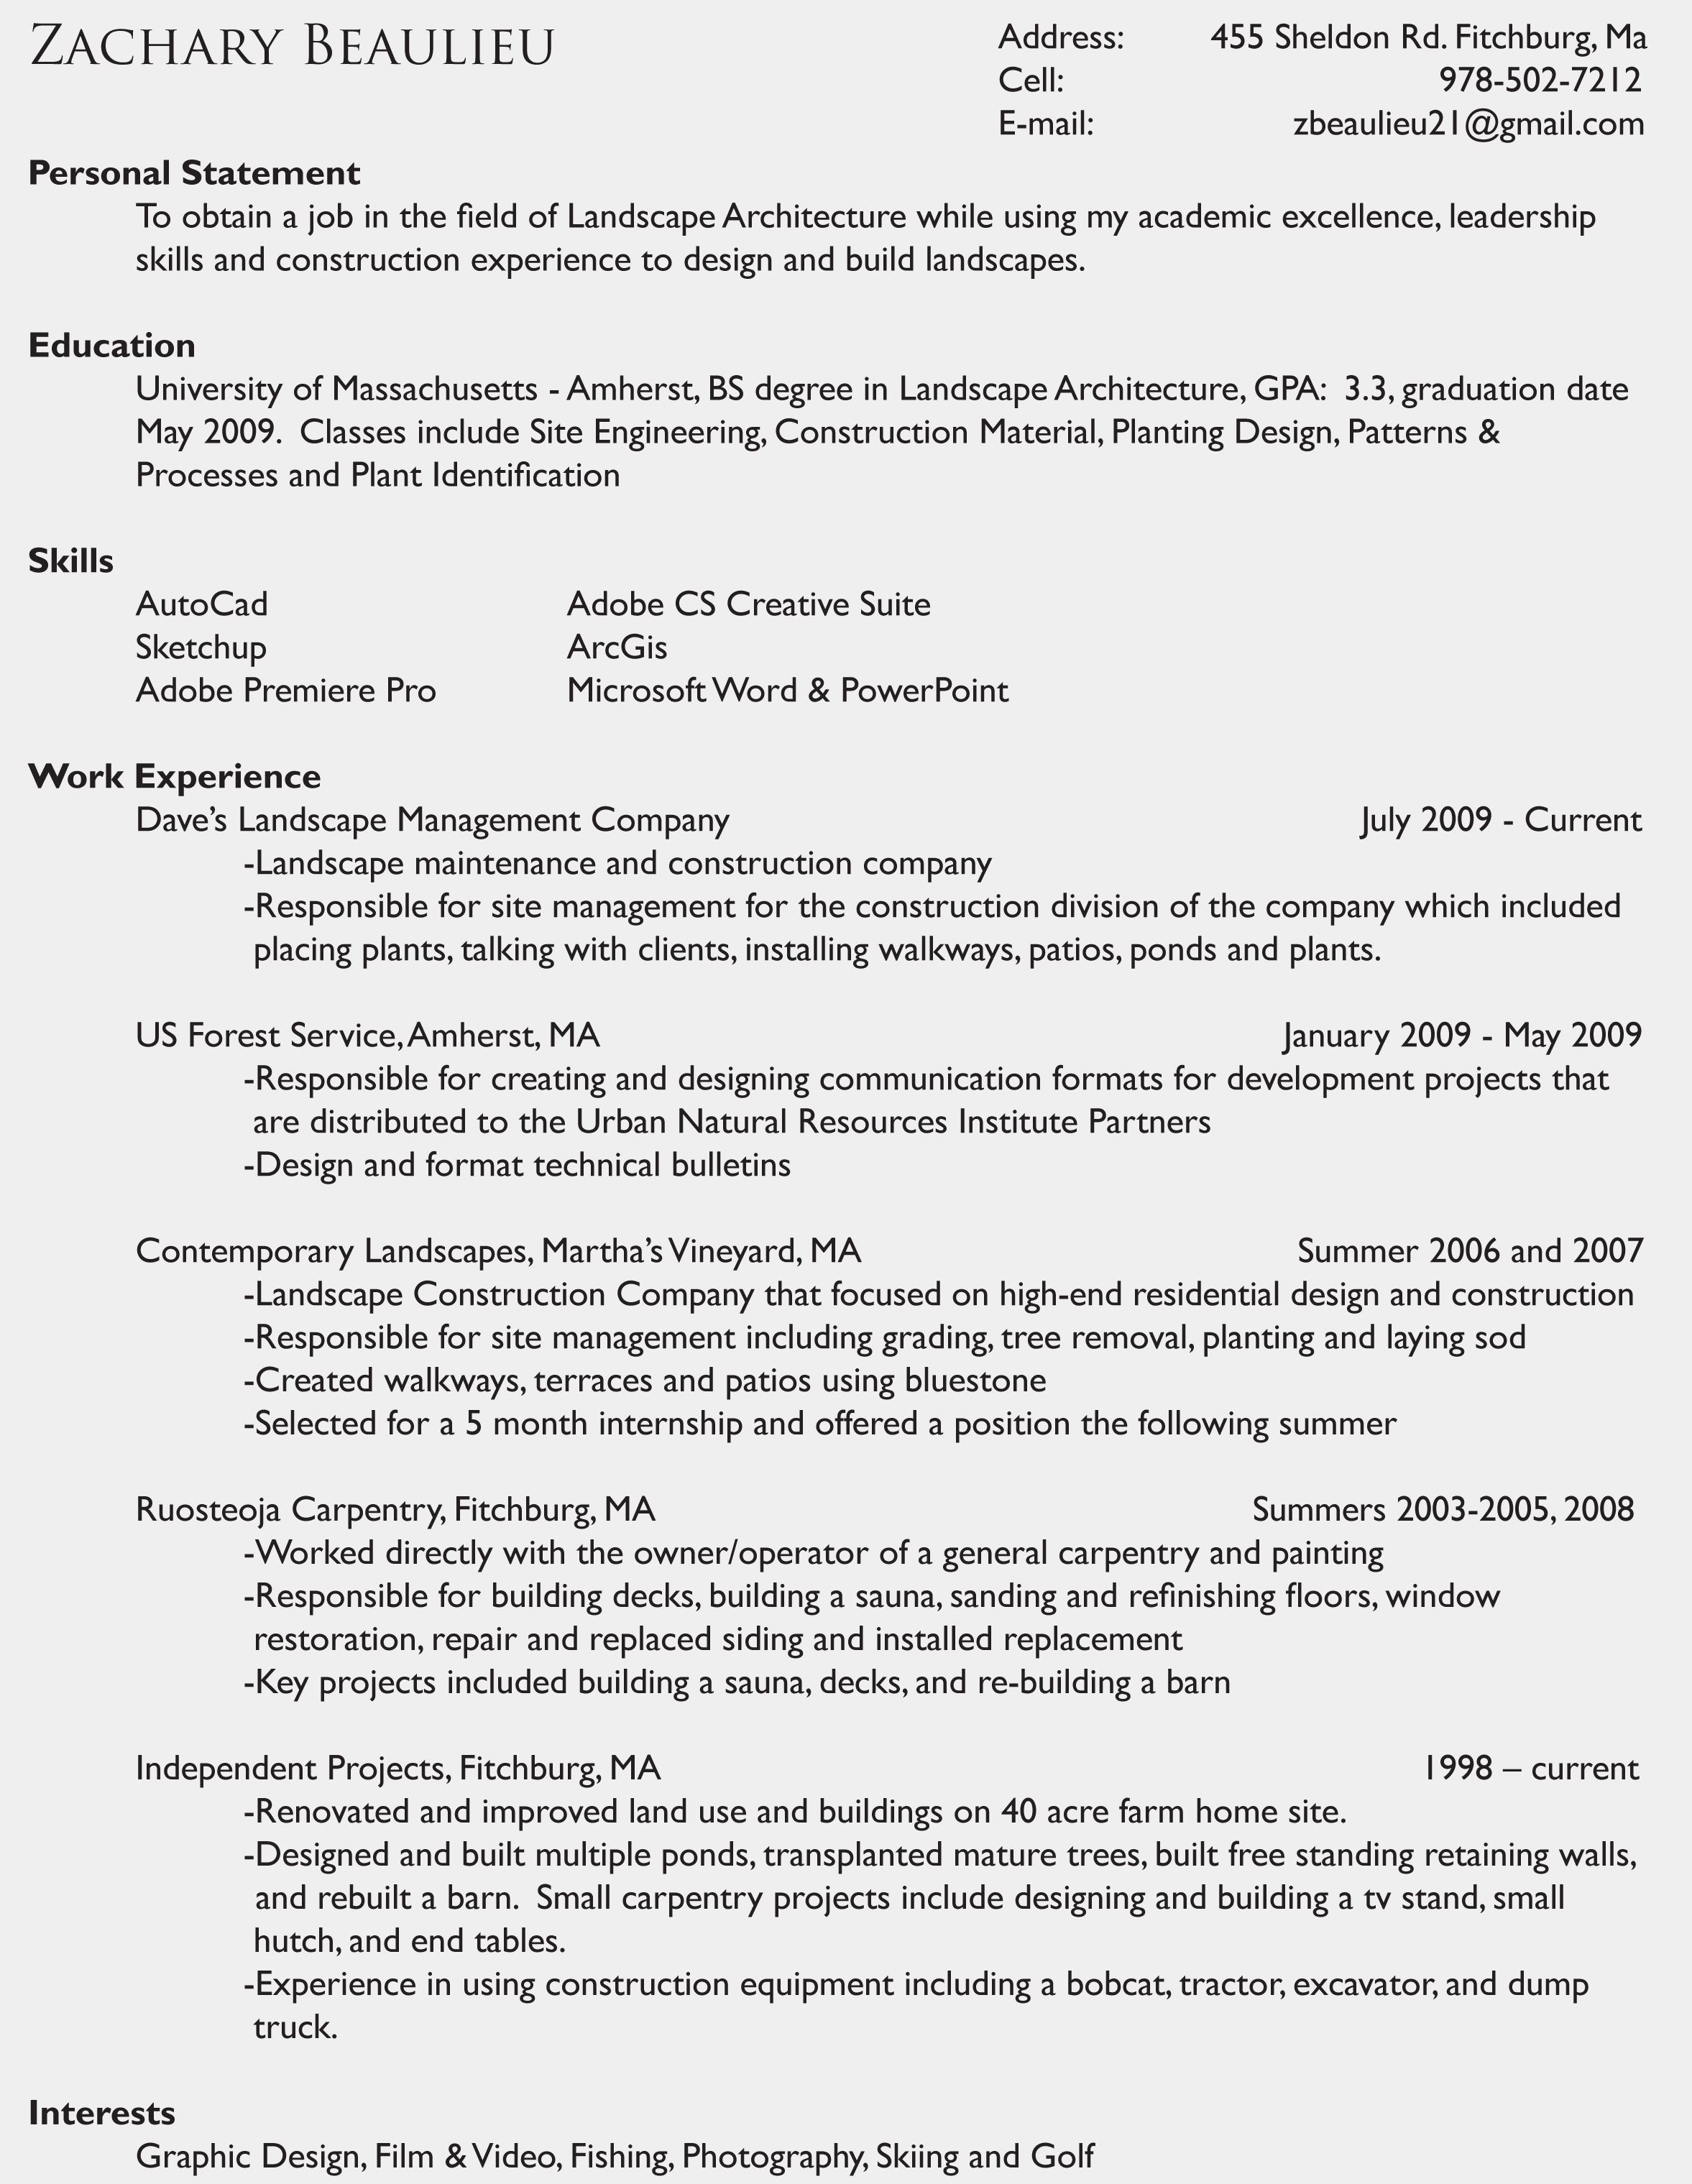 Residential construction company owner sample resume